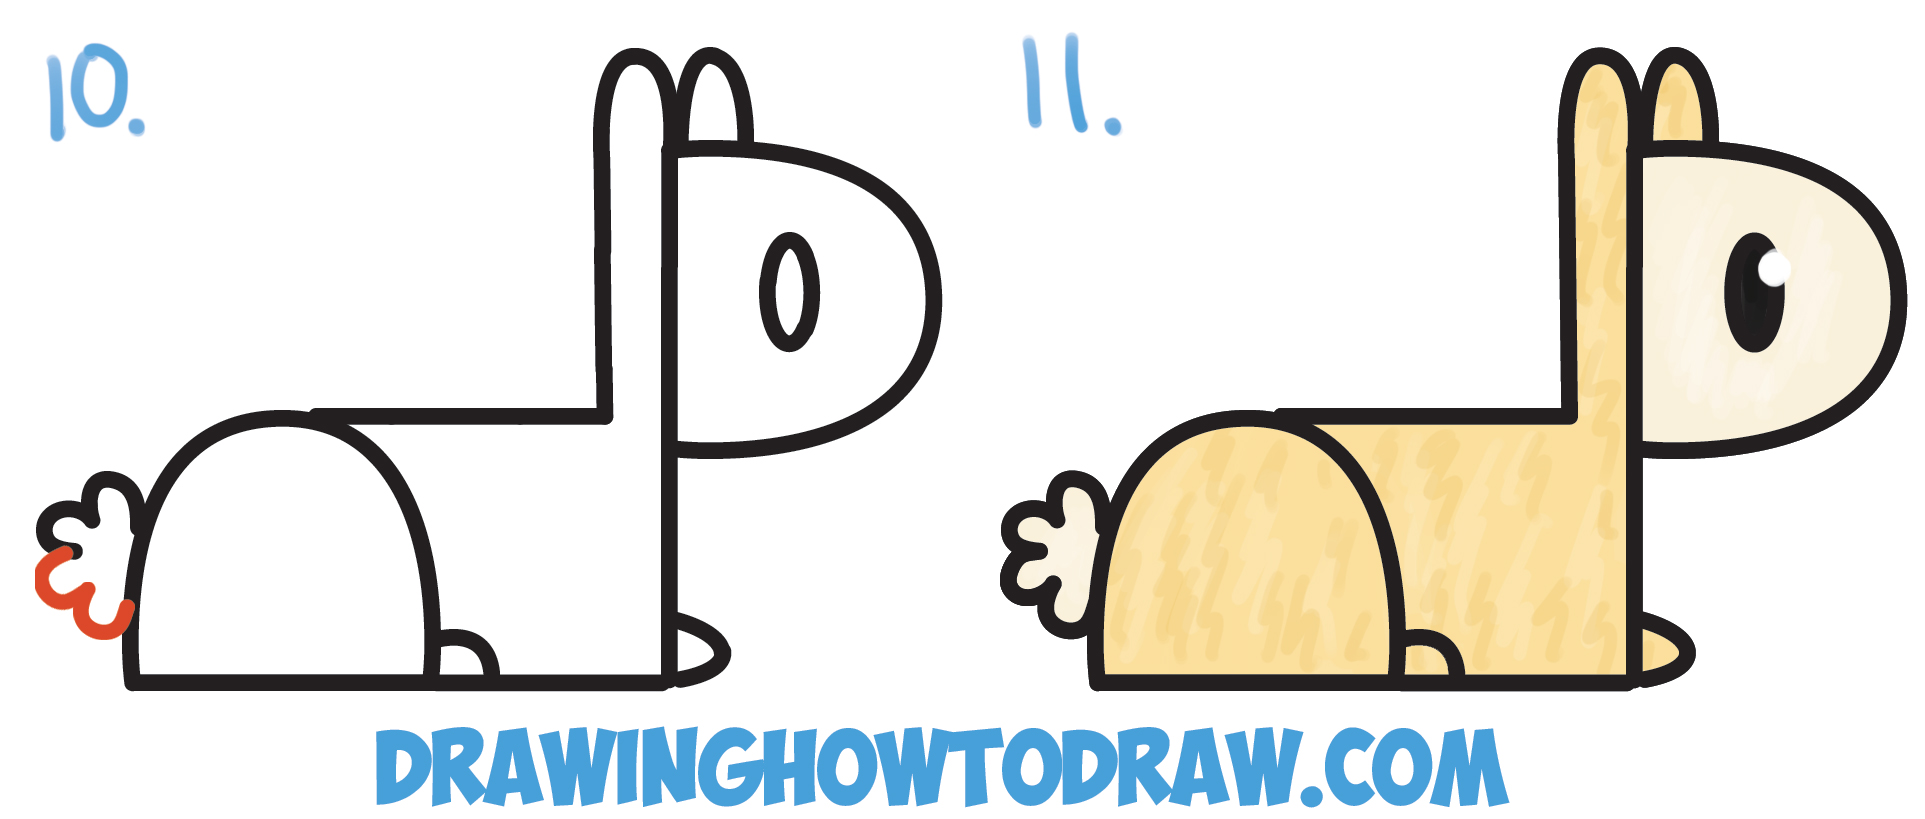 """Learn How to Draw Cute Cartoon Kawaii Llama from """"P"""" Letters Simple Steps Drawing Lesson for Children and Beginners"""